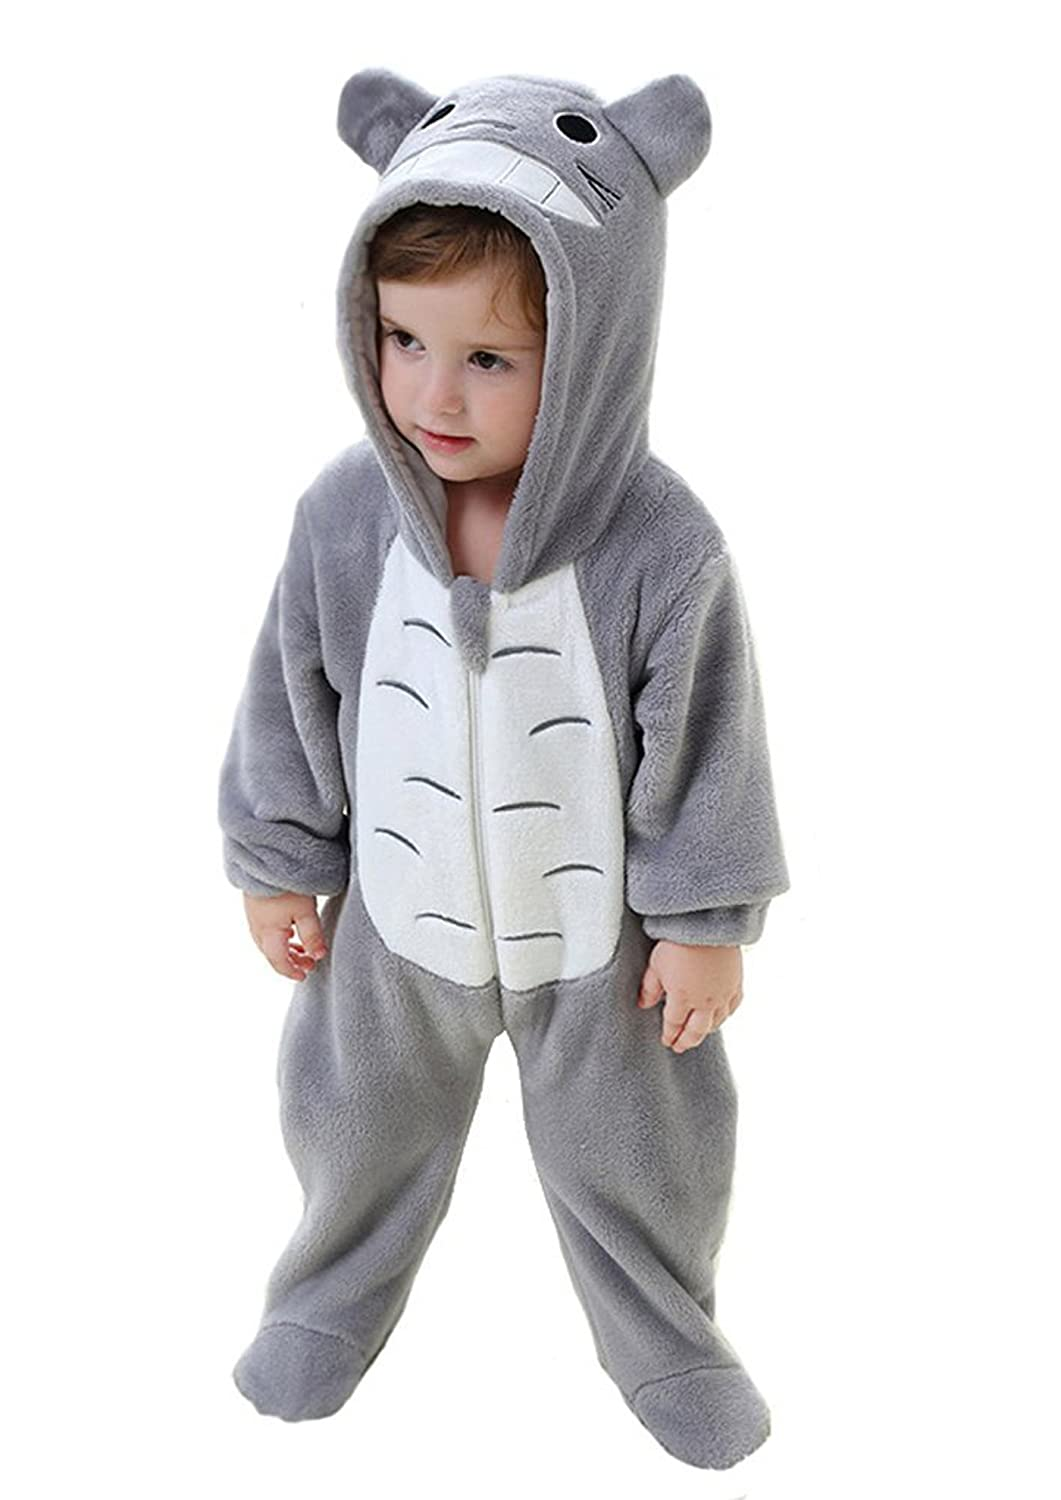 Auspicious beginning Cartoon Totoro morbido e confortevole Baby / Toddlers Costume per il sonno